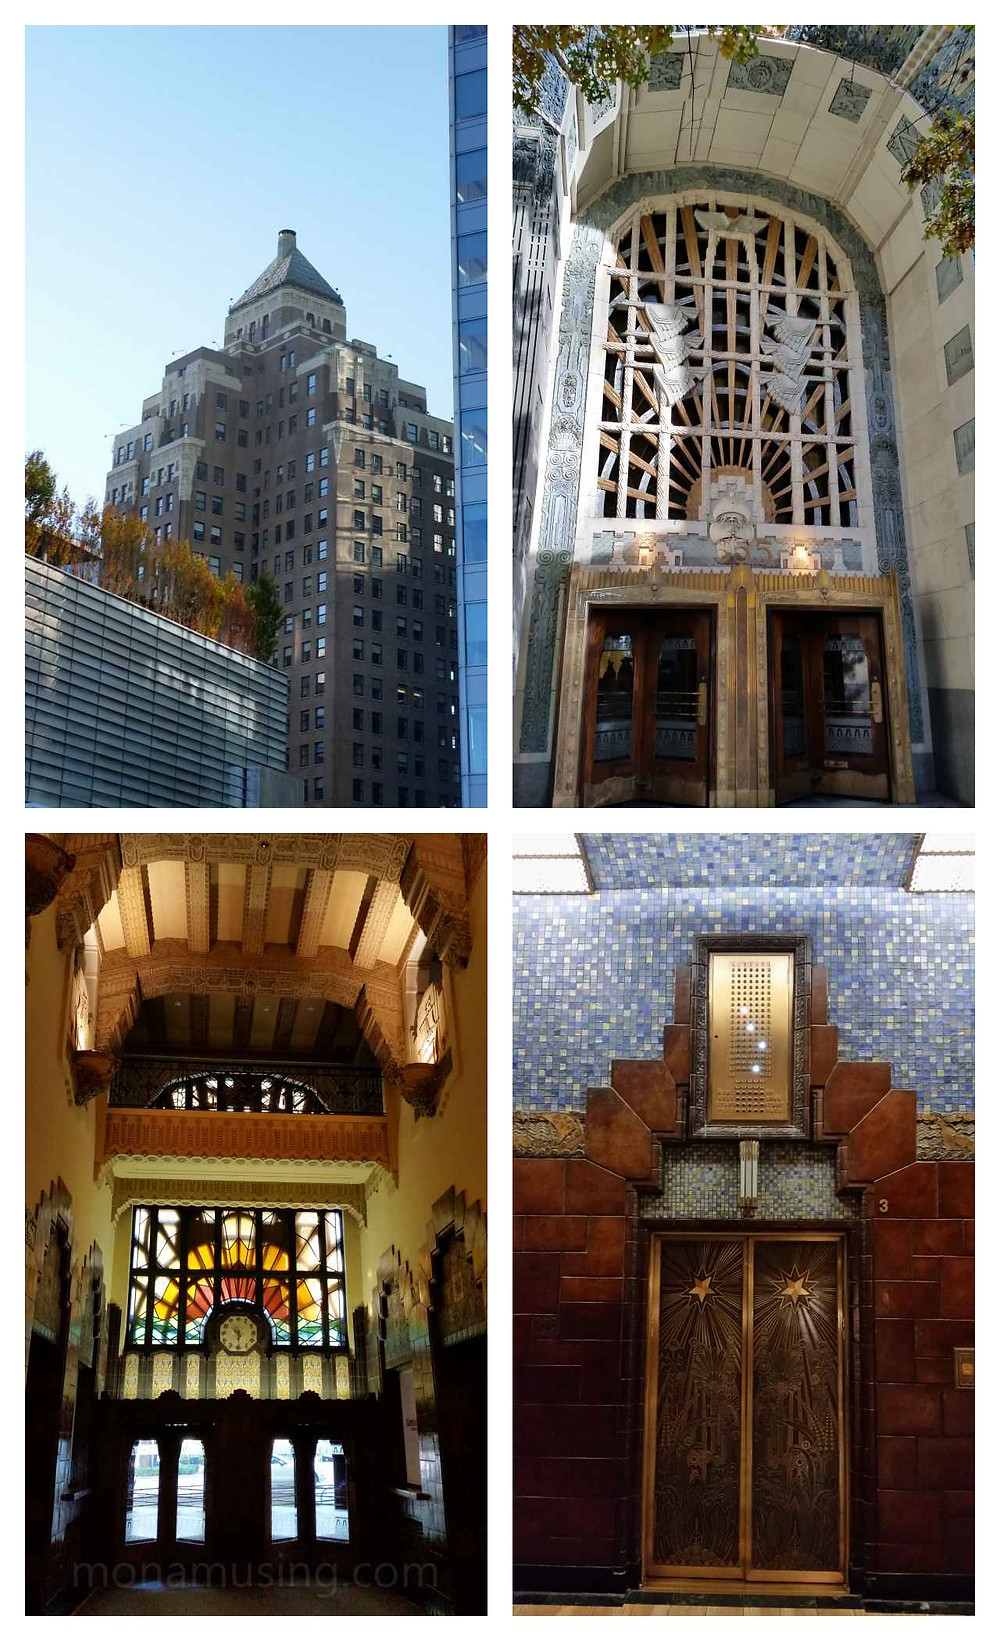 interior and exterior of the Marine Building in Vancover, a fine example of Art Deco architecture